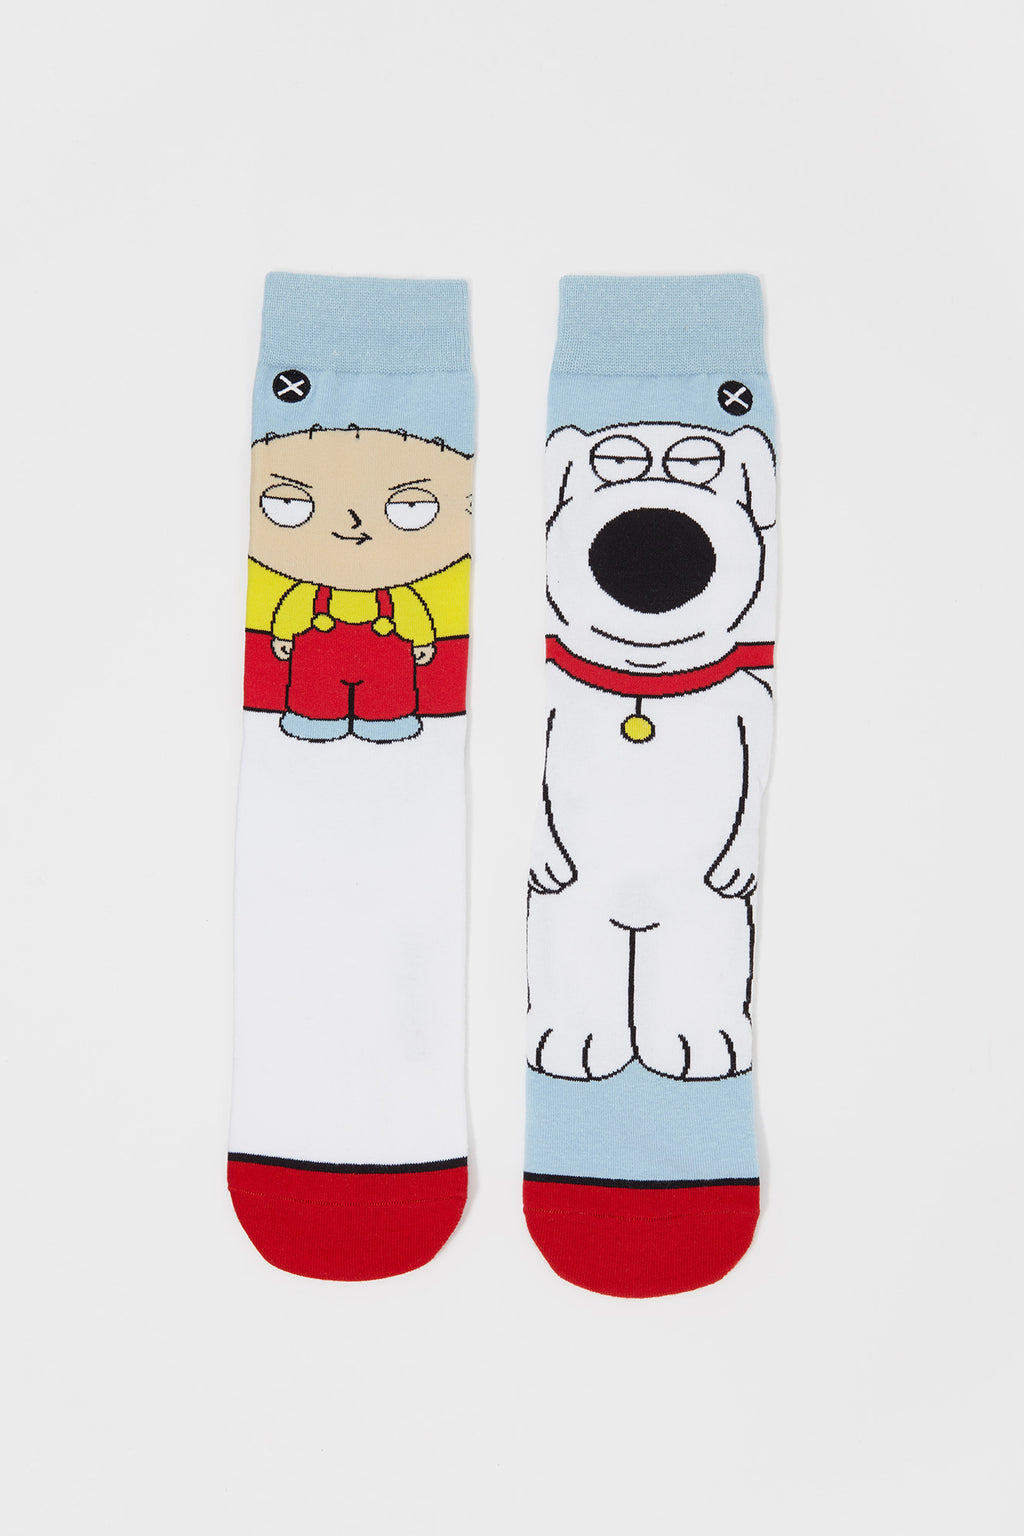 Odd Sox Mens Family Guy Crew Socks